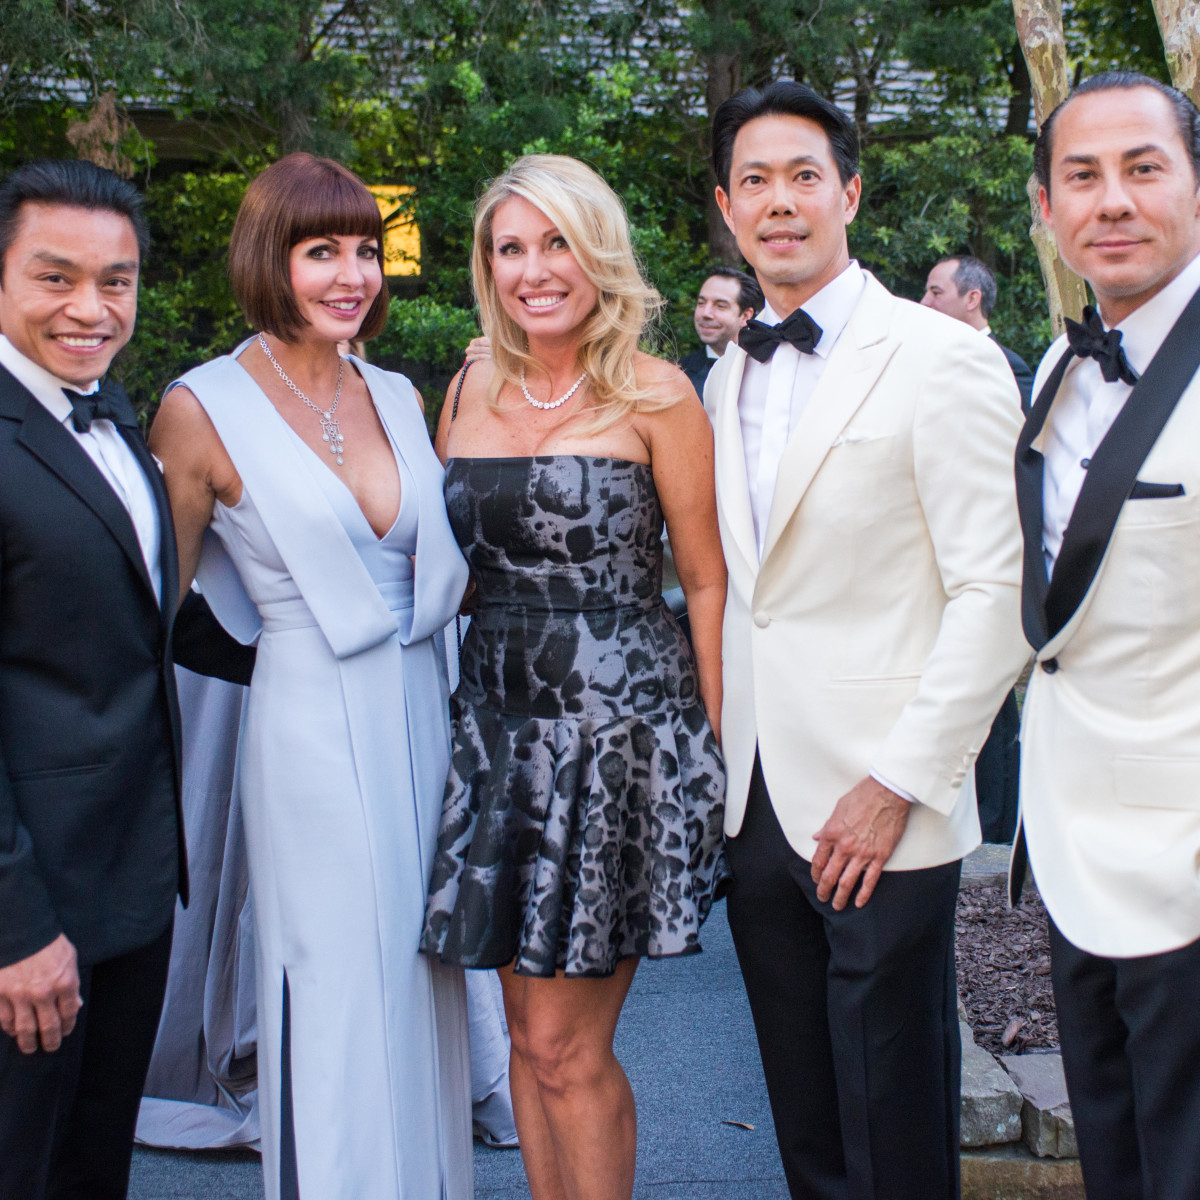 Van CleeF & Arpels party, April 2016, Quang Henderson, Staci Henderson, Tifany Wong, Randall Wong, Cenk Ozdogan